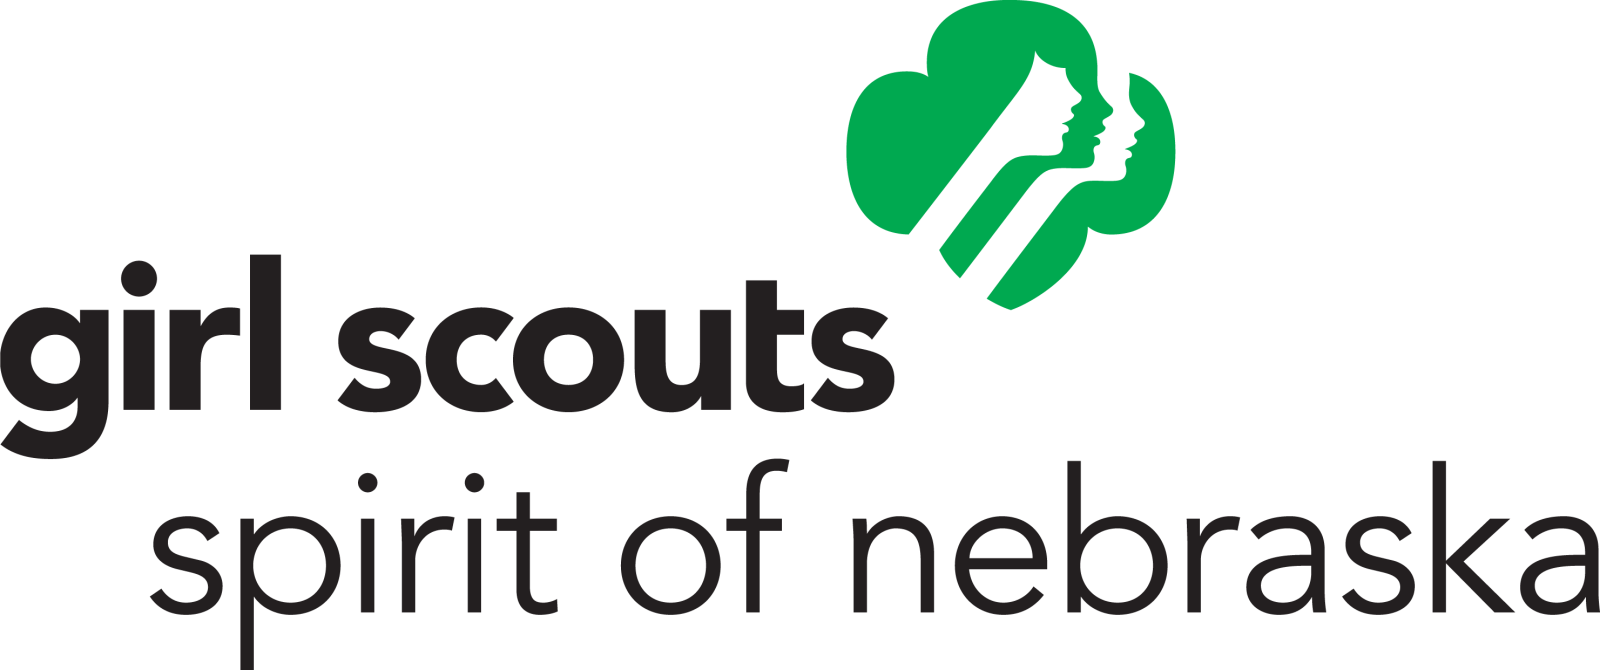 Girl Scouts of Nebraska